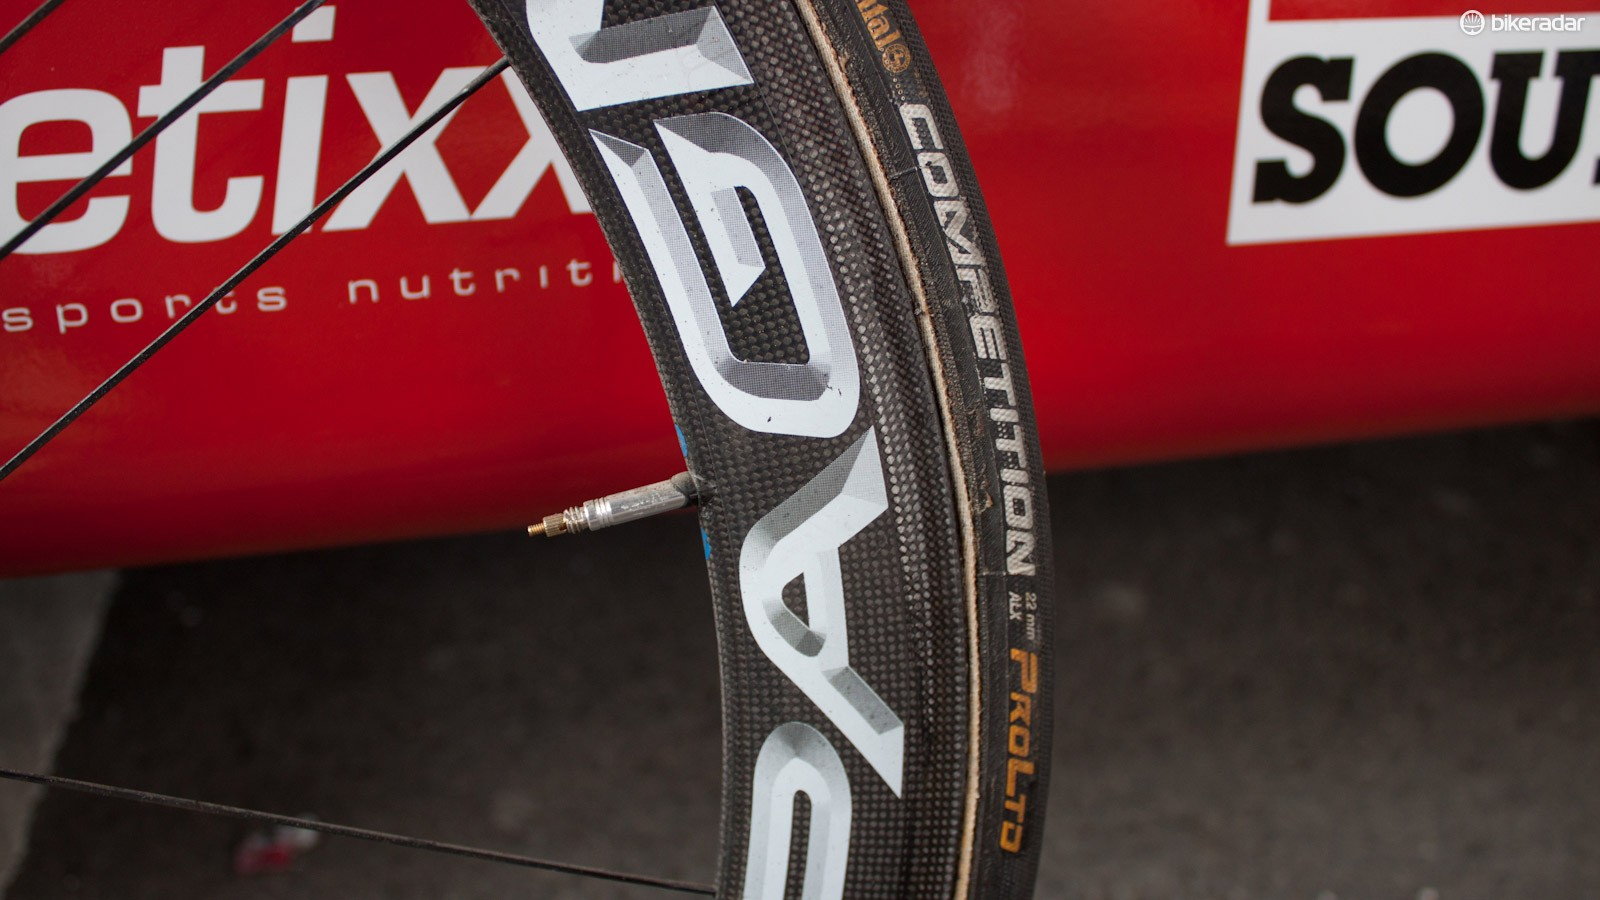 These pro-only edition tubulars are just 22mm wide